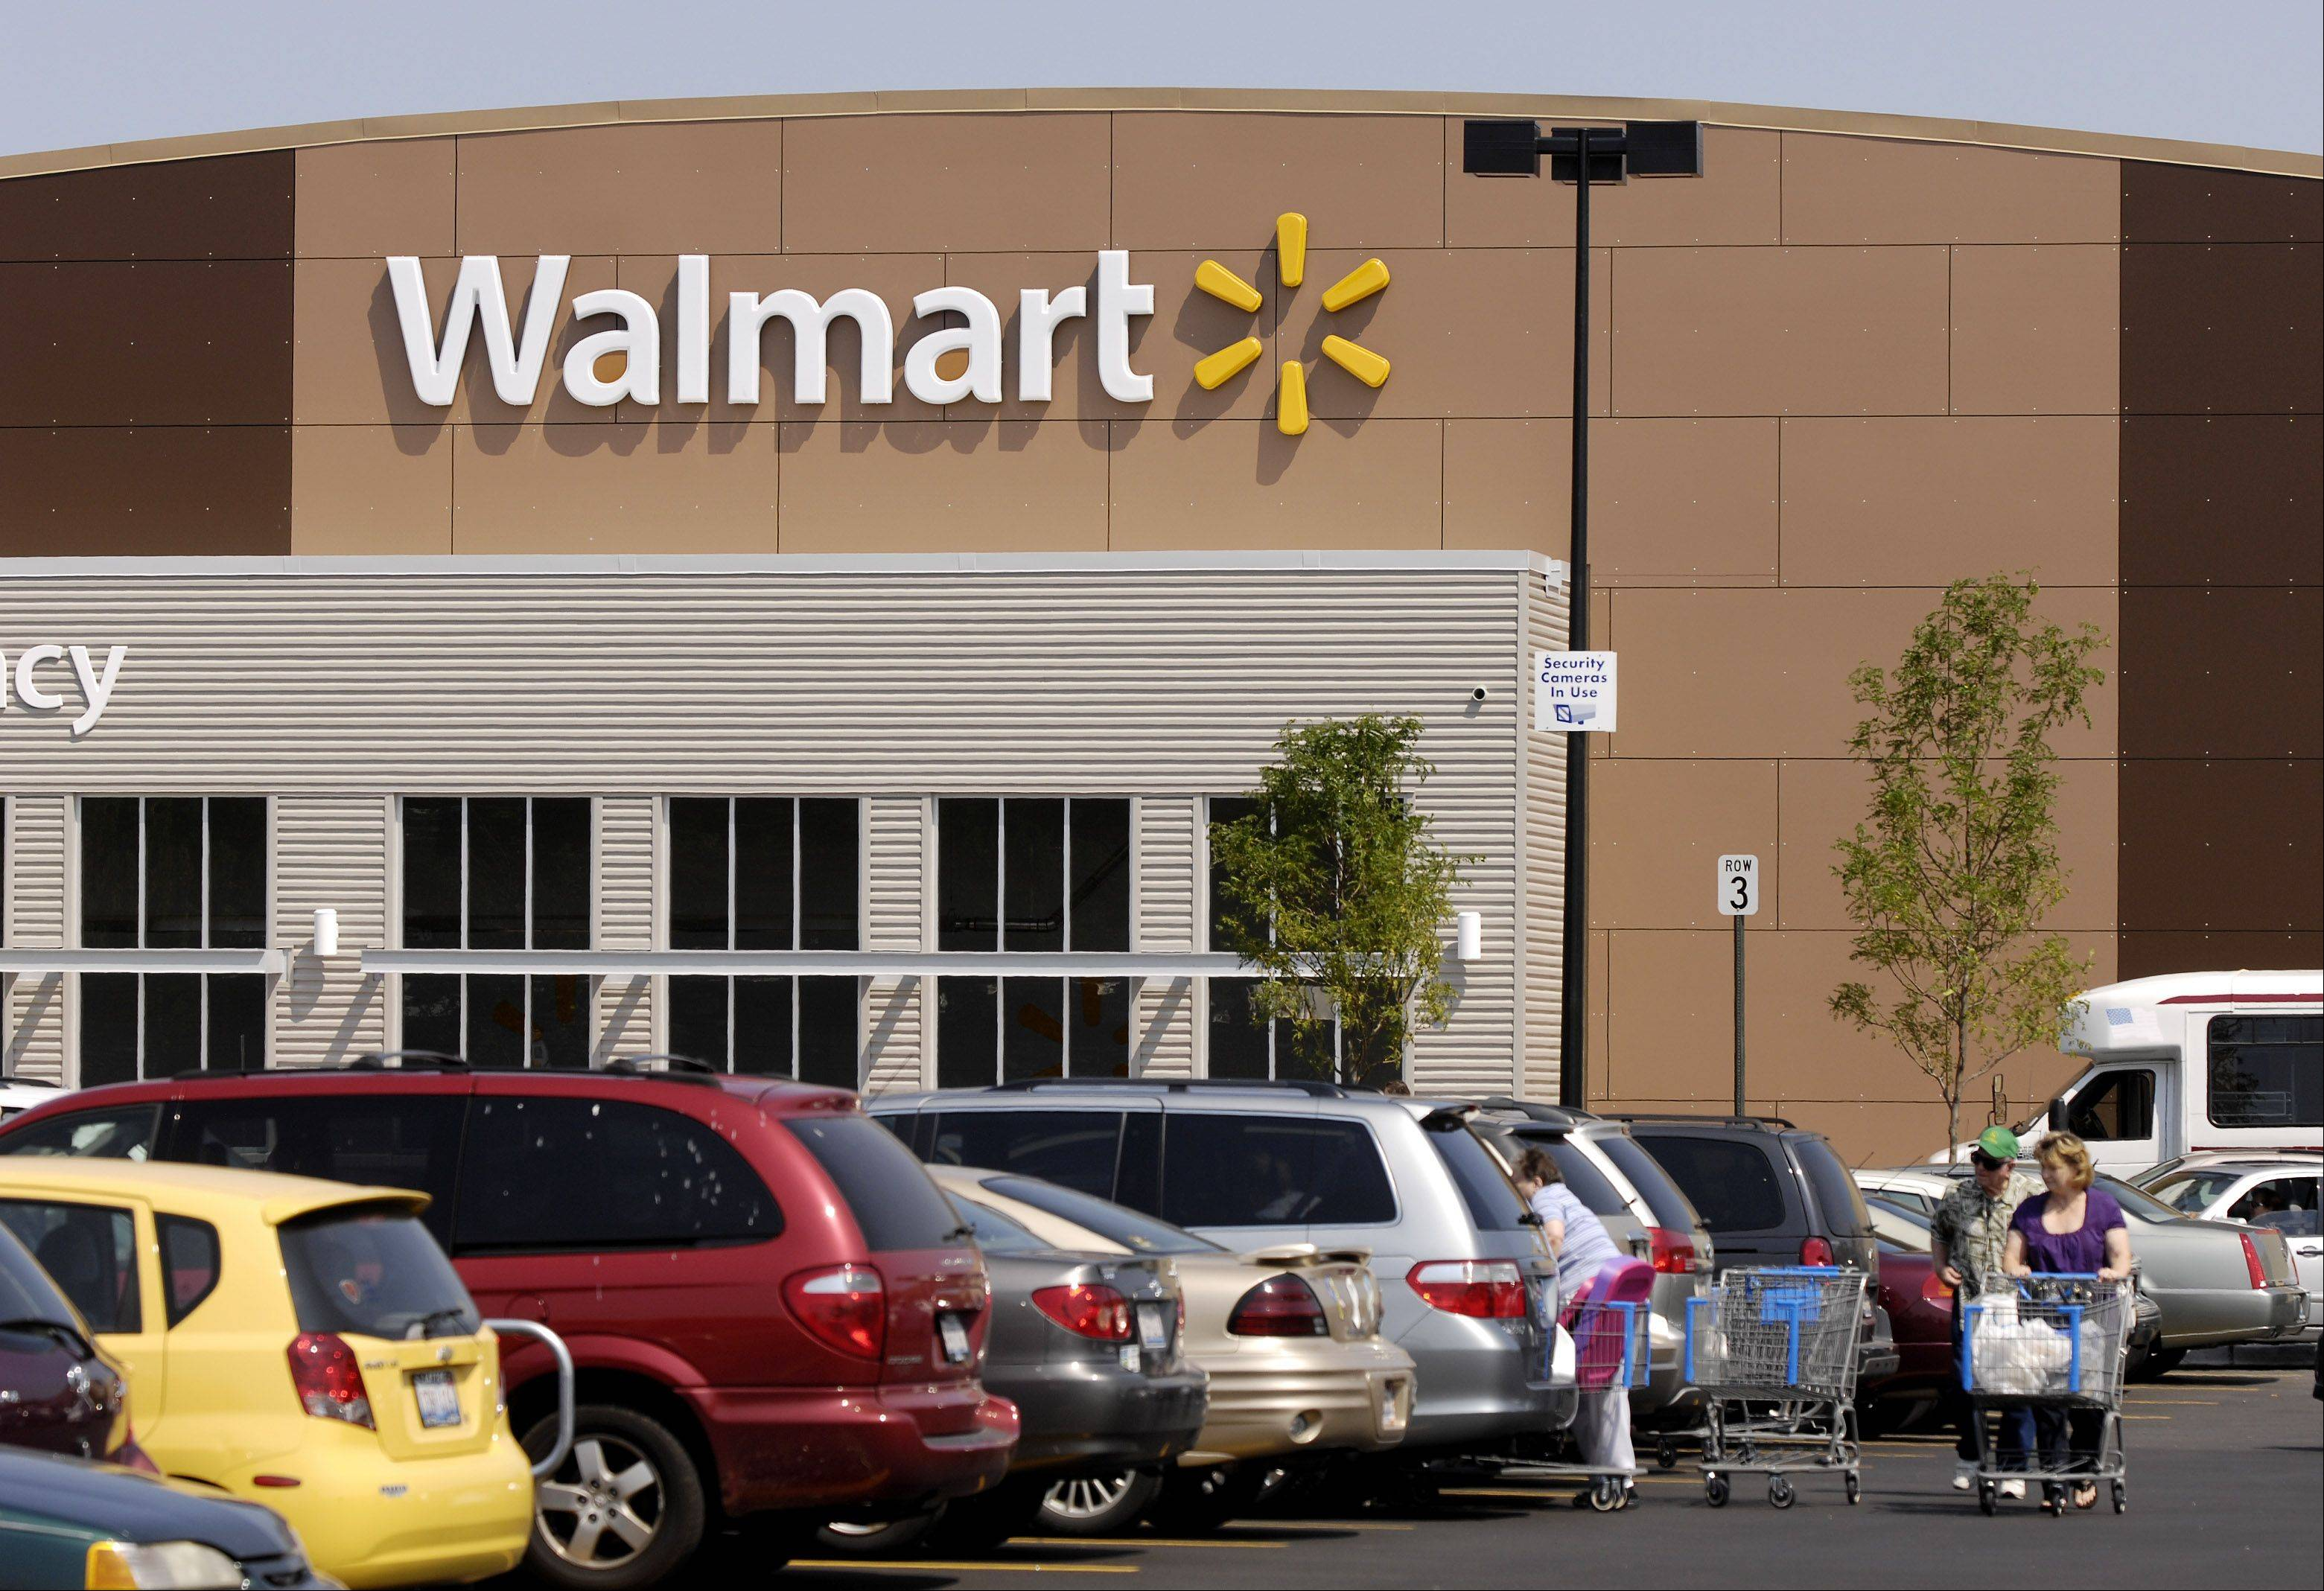 Wal-Mart Stores Inc.'s first quarter profit rose 1.1 percent as the world's largest retailer struggled with a sales slump in its namesake business.